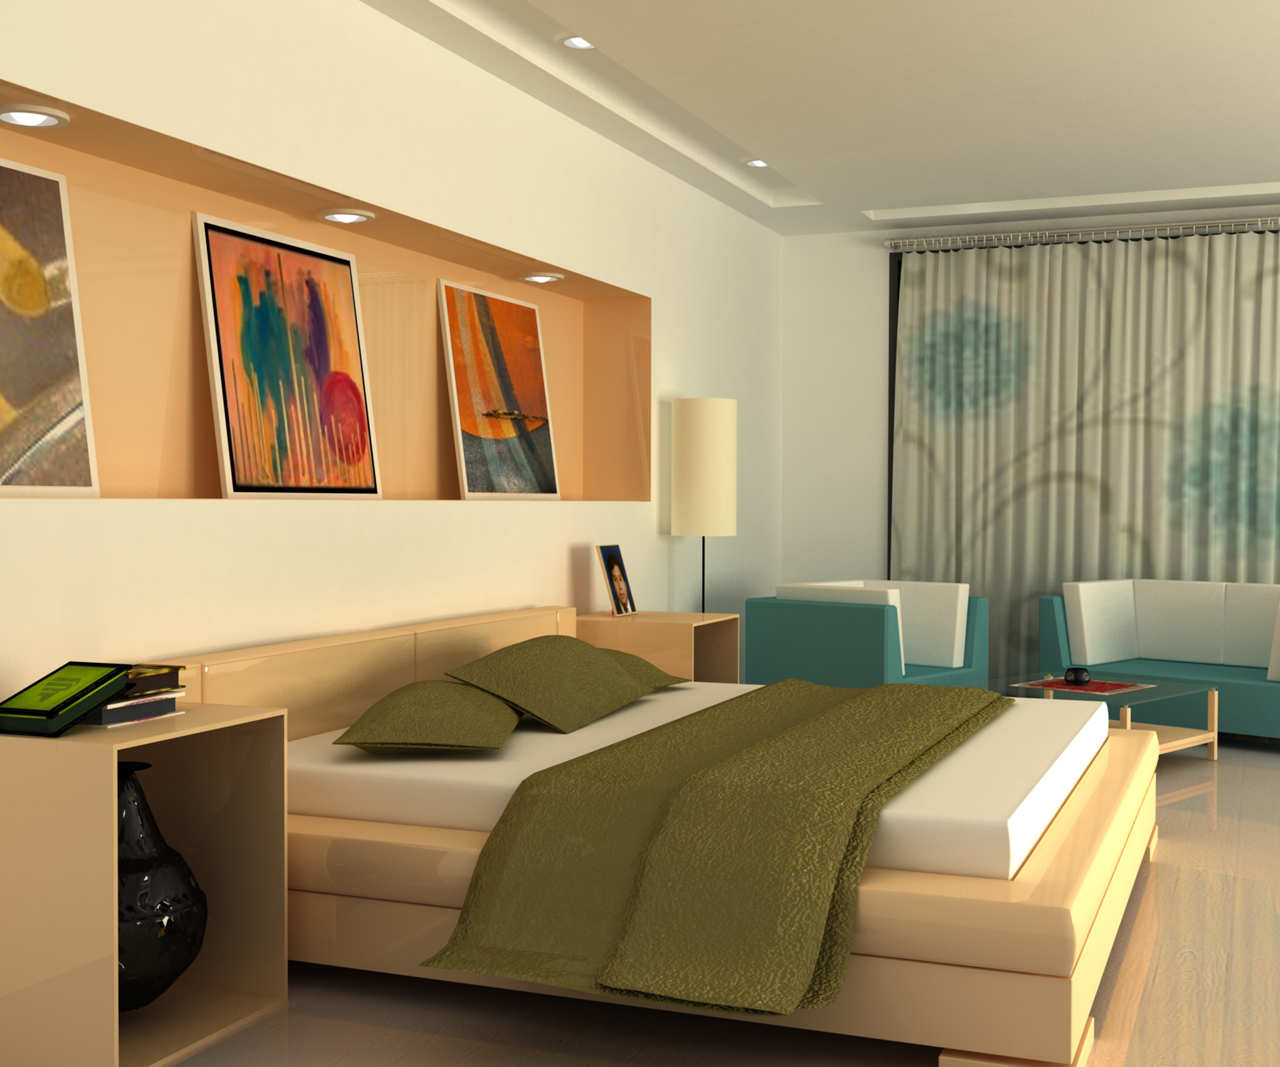 3D Bedroom Design Interior Exterior Plan  Try To Design Your 3D Bedroom Online